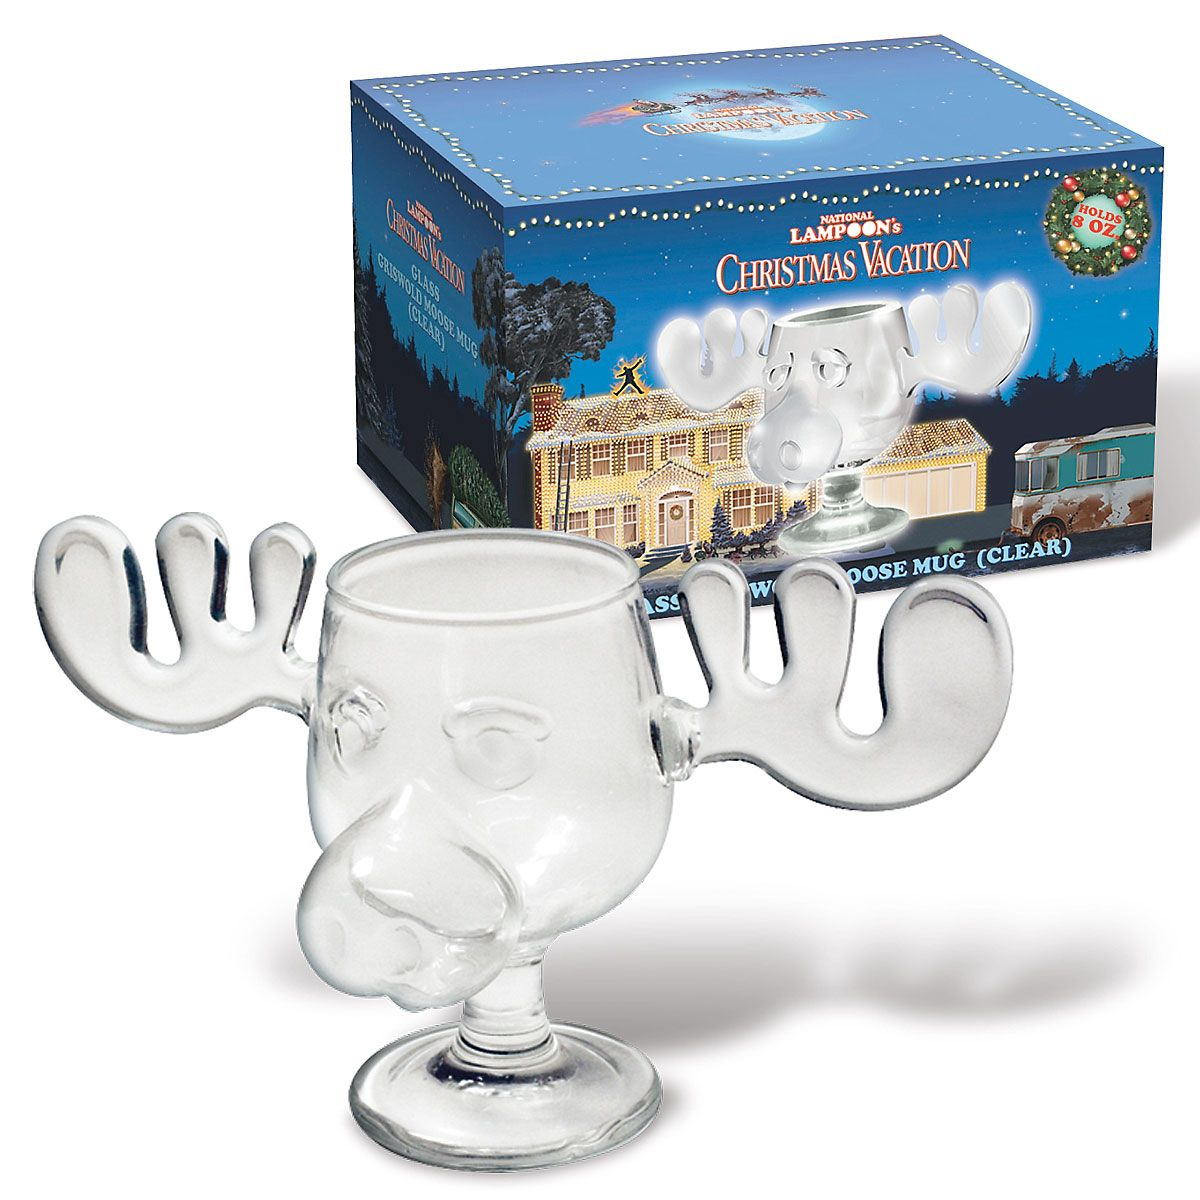 Christmas Vacation Moose Mug